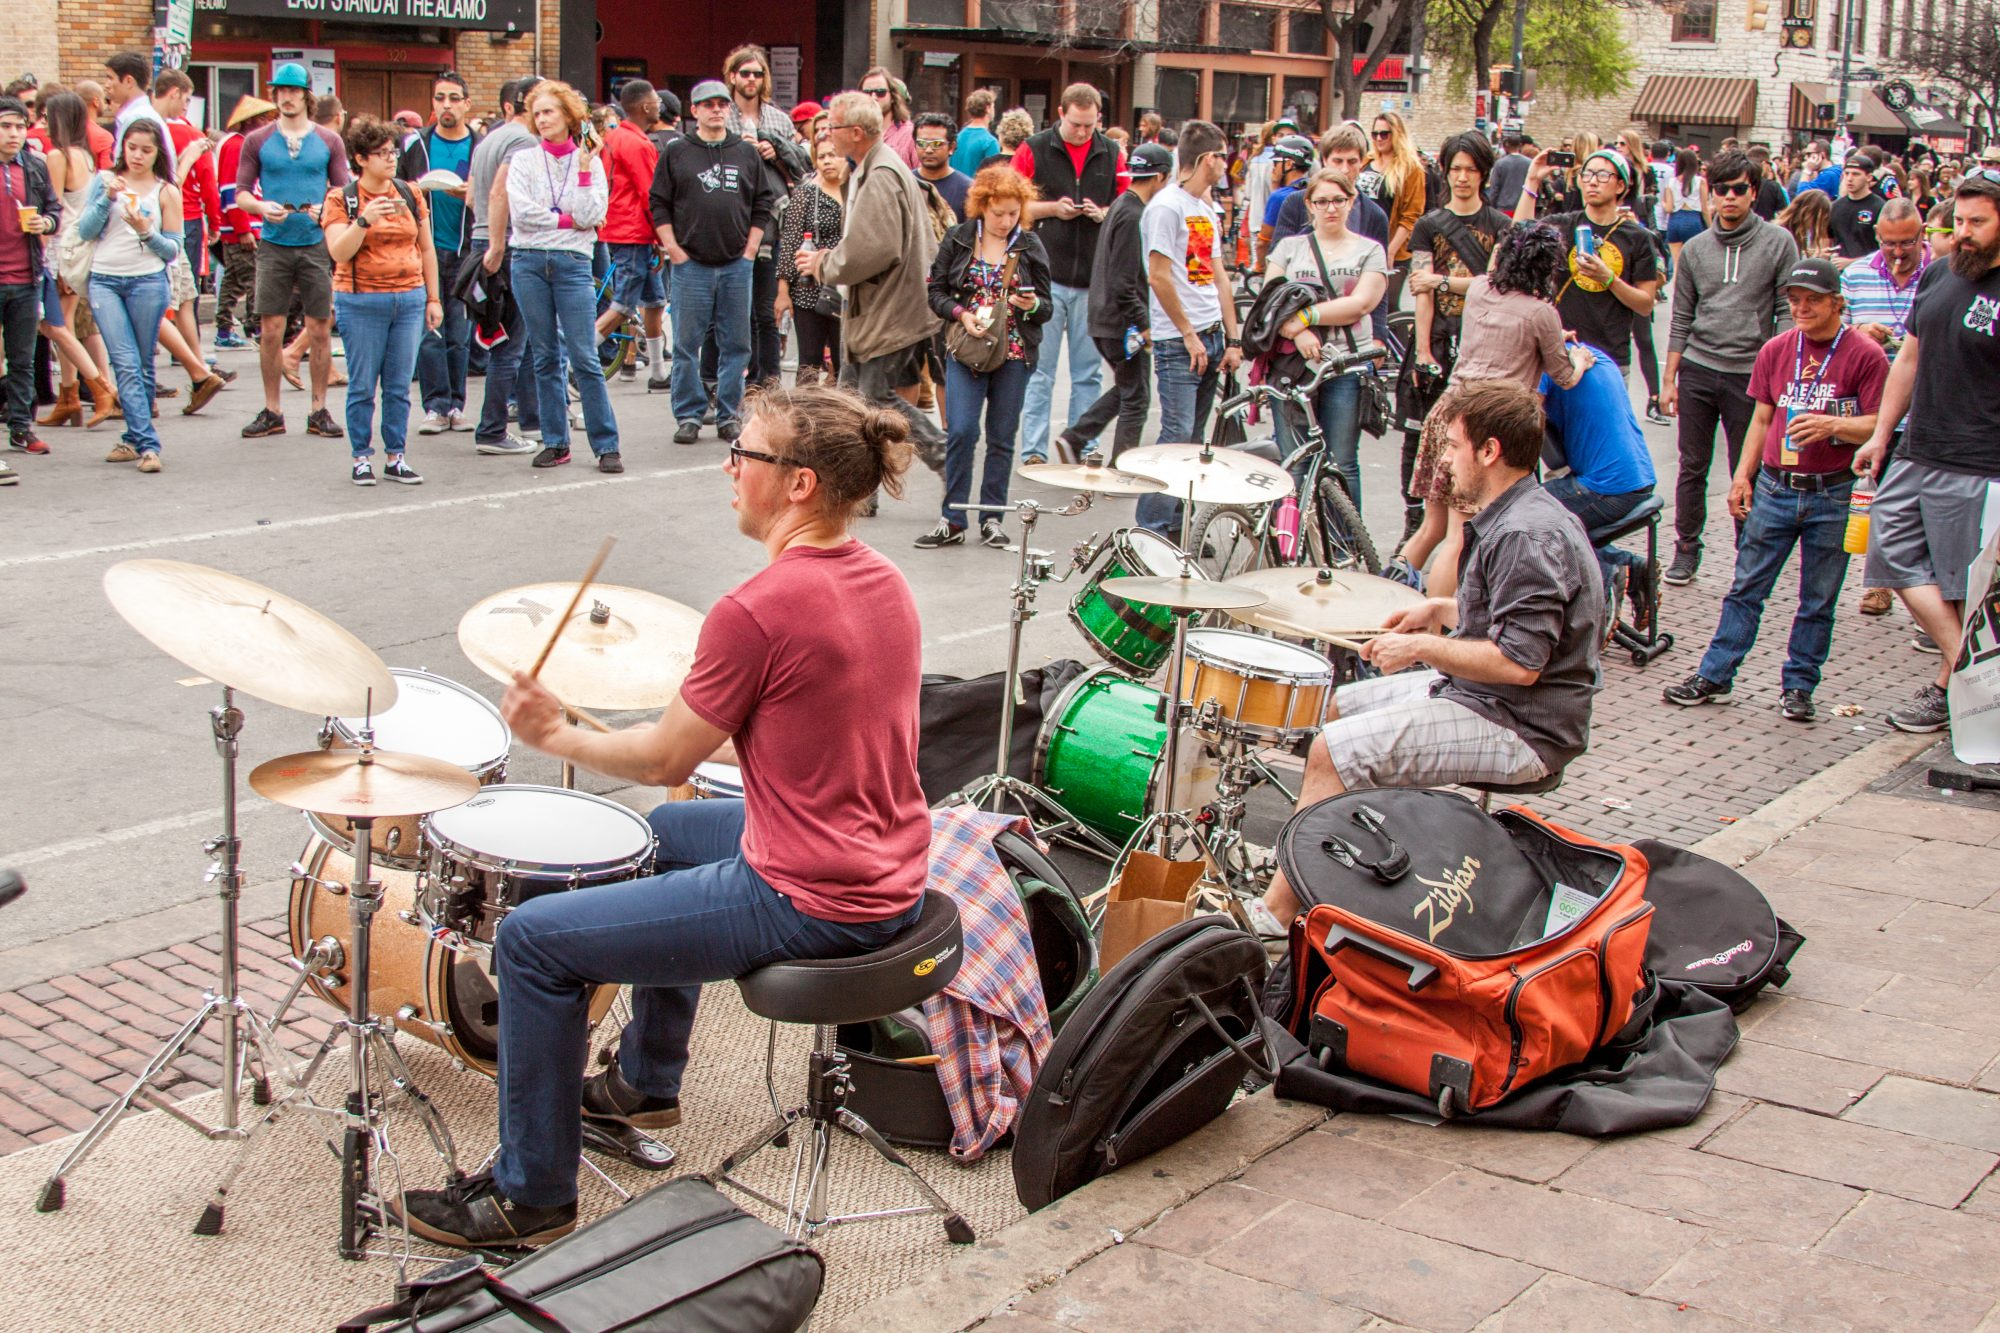 band on sixth street in austin